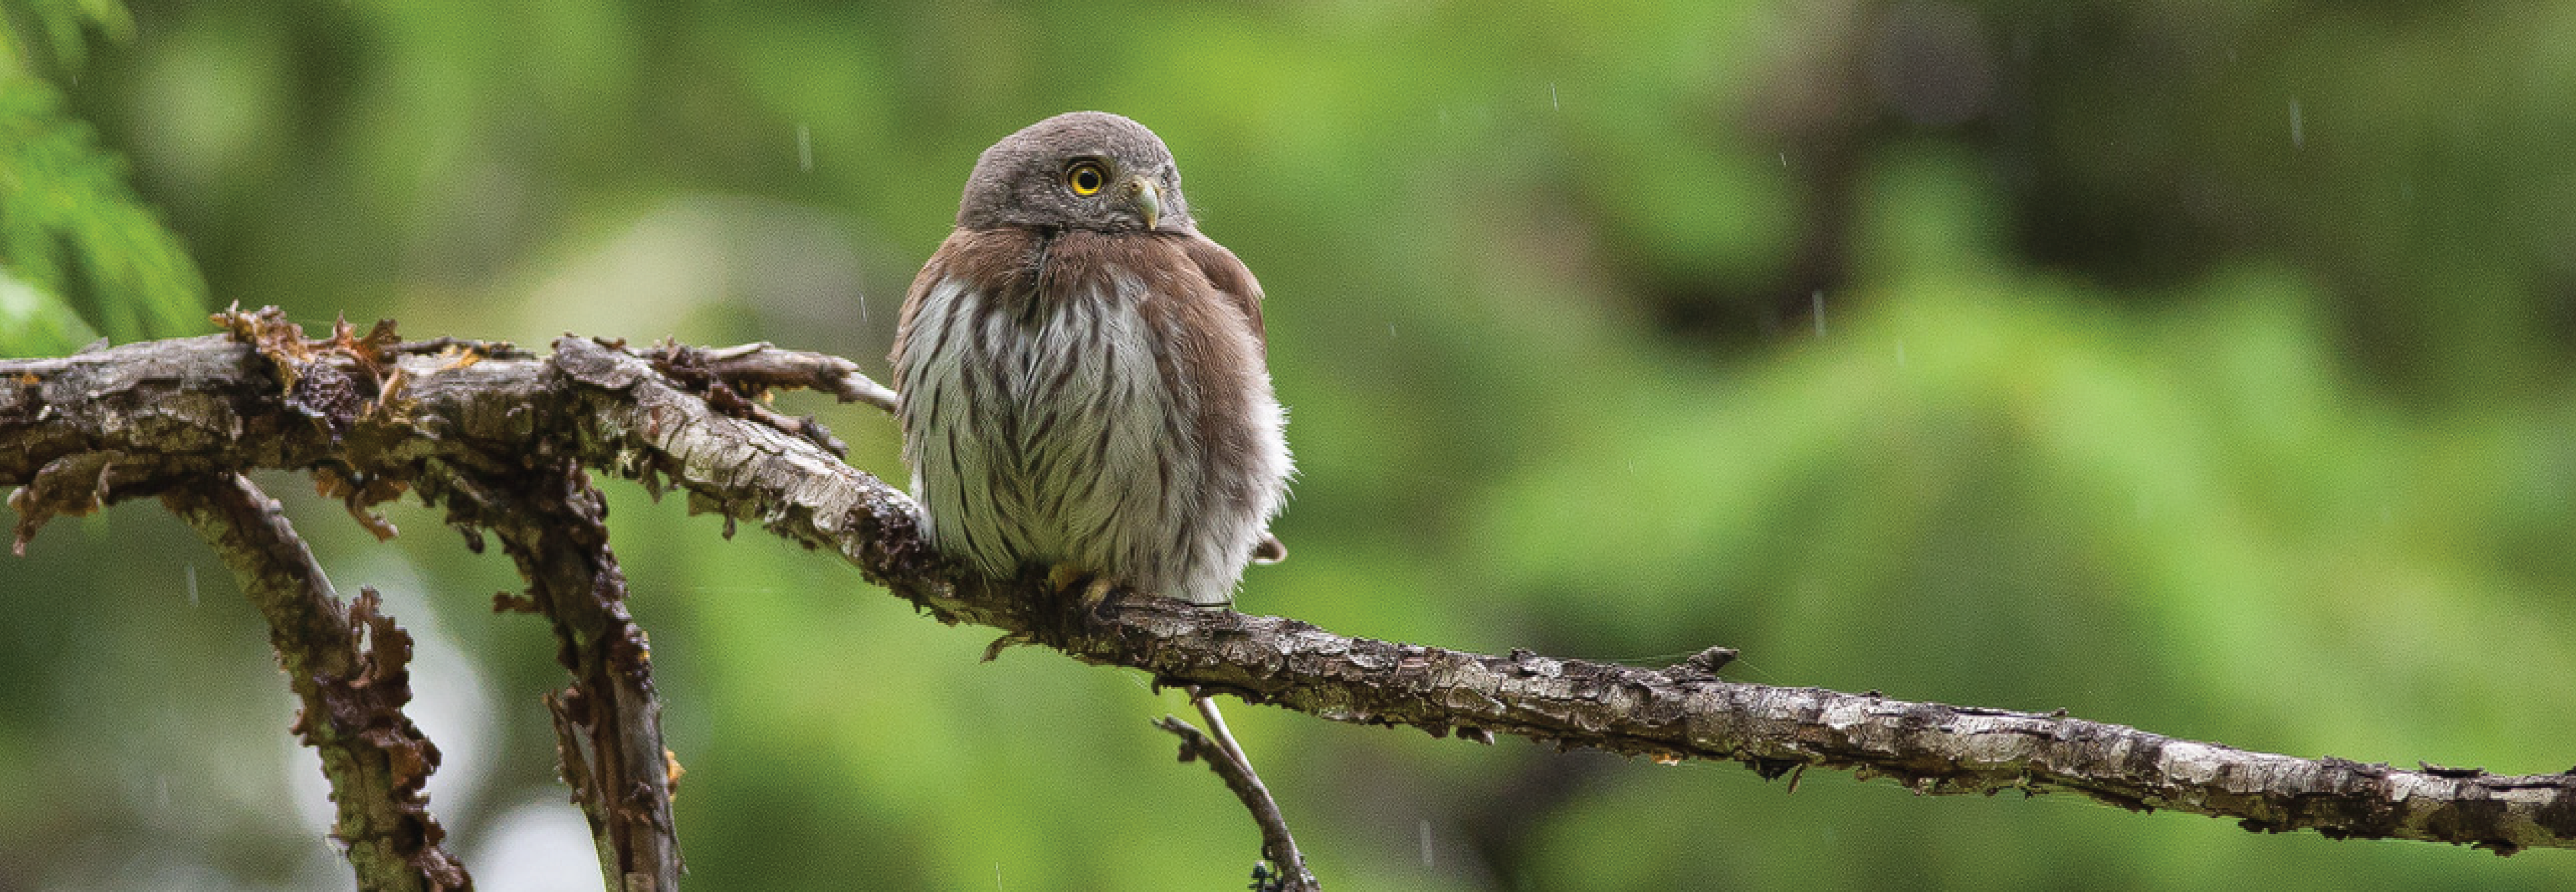 Northern Pygmy Owl - photo by Andrew Kumler